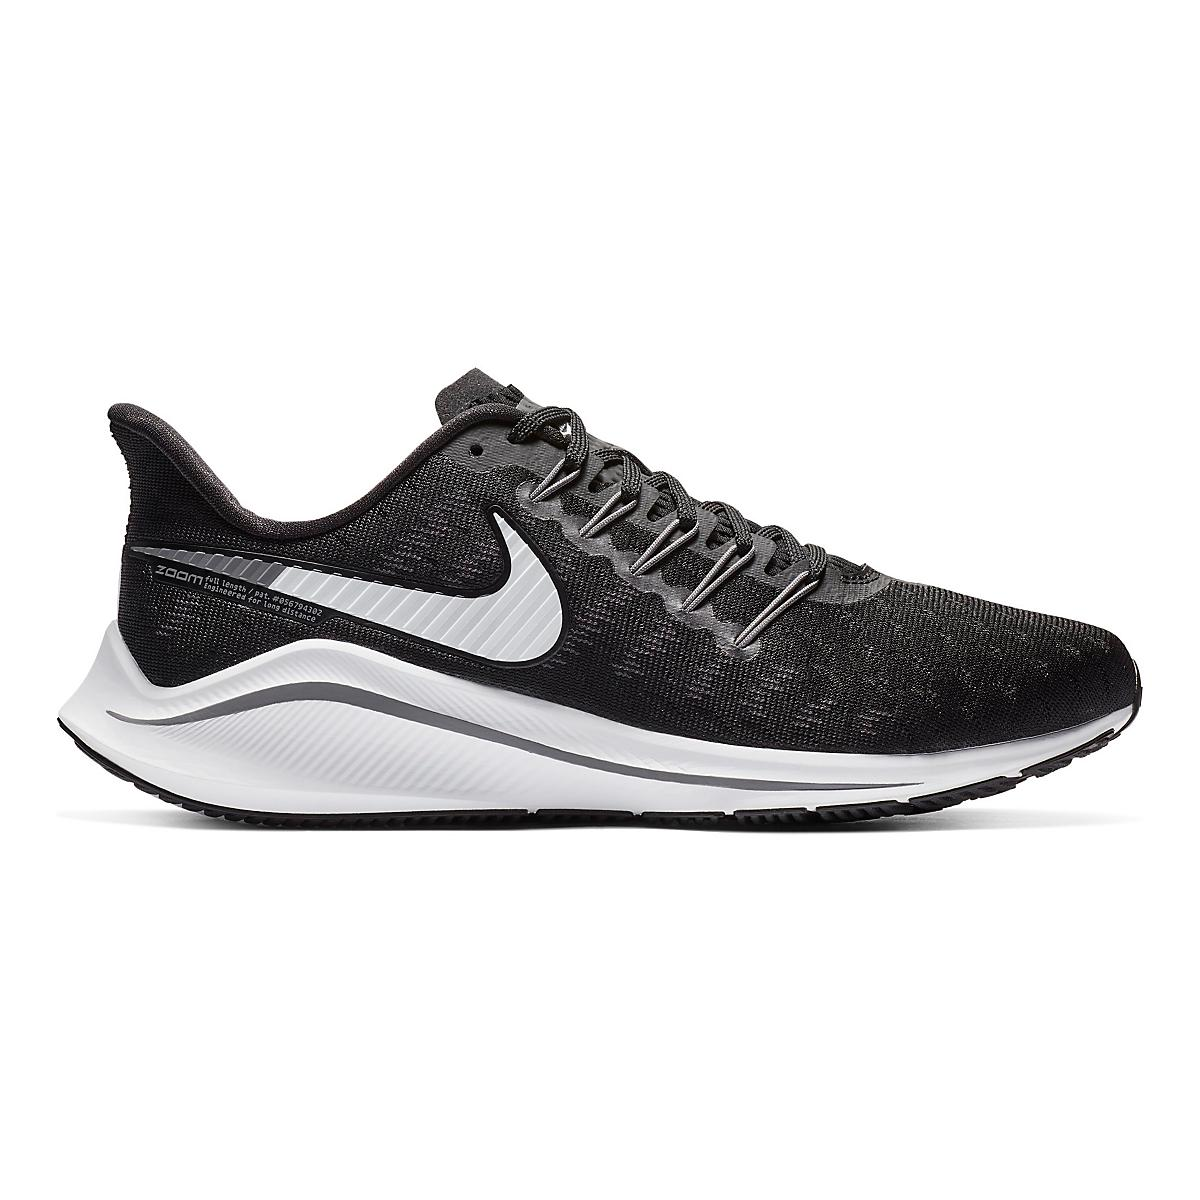 buy popular a3f05 8ccd2 Mens Nike Air Zoom Vomero 14 Running Shoe at Road Runner Sports